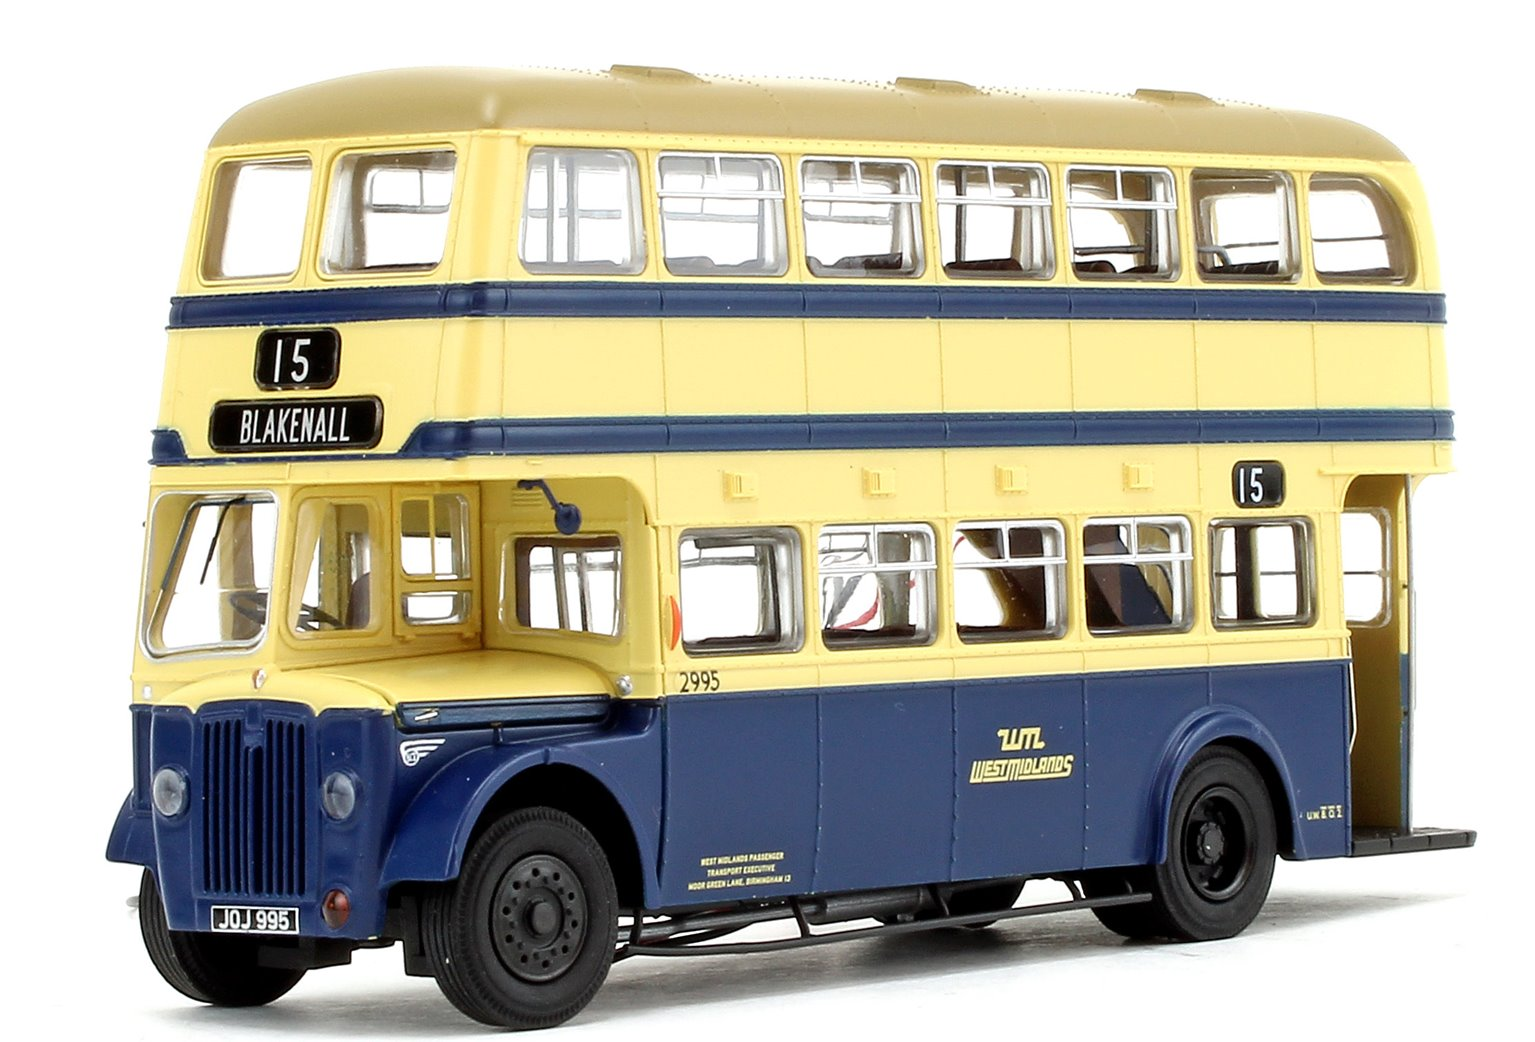 Deluxe Edition West Midlands PTE (WMPTE) Oxford Blue and Cream with Khaki Roof Guy Arab IV with Metro-Cammell body - Fleet No.2995 - 15 Blakenall - Licence No. JOJ 995